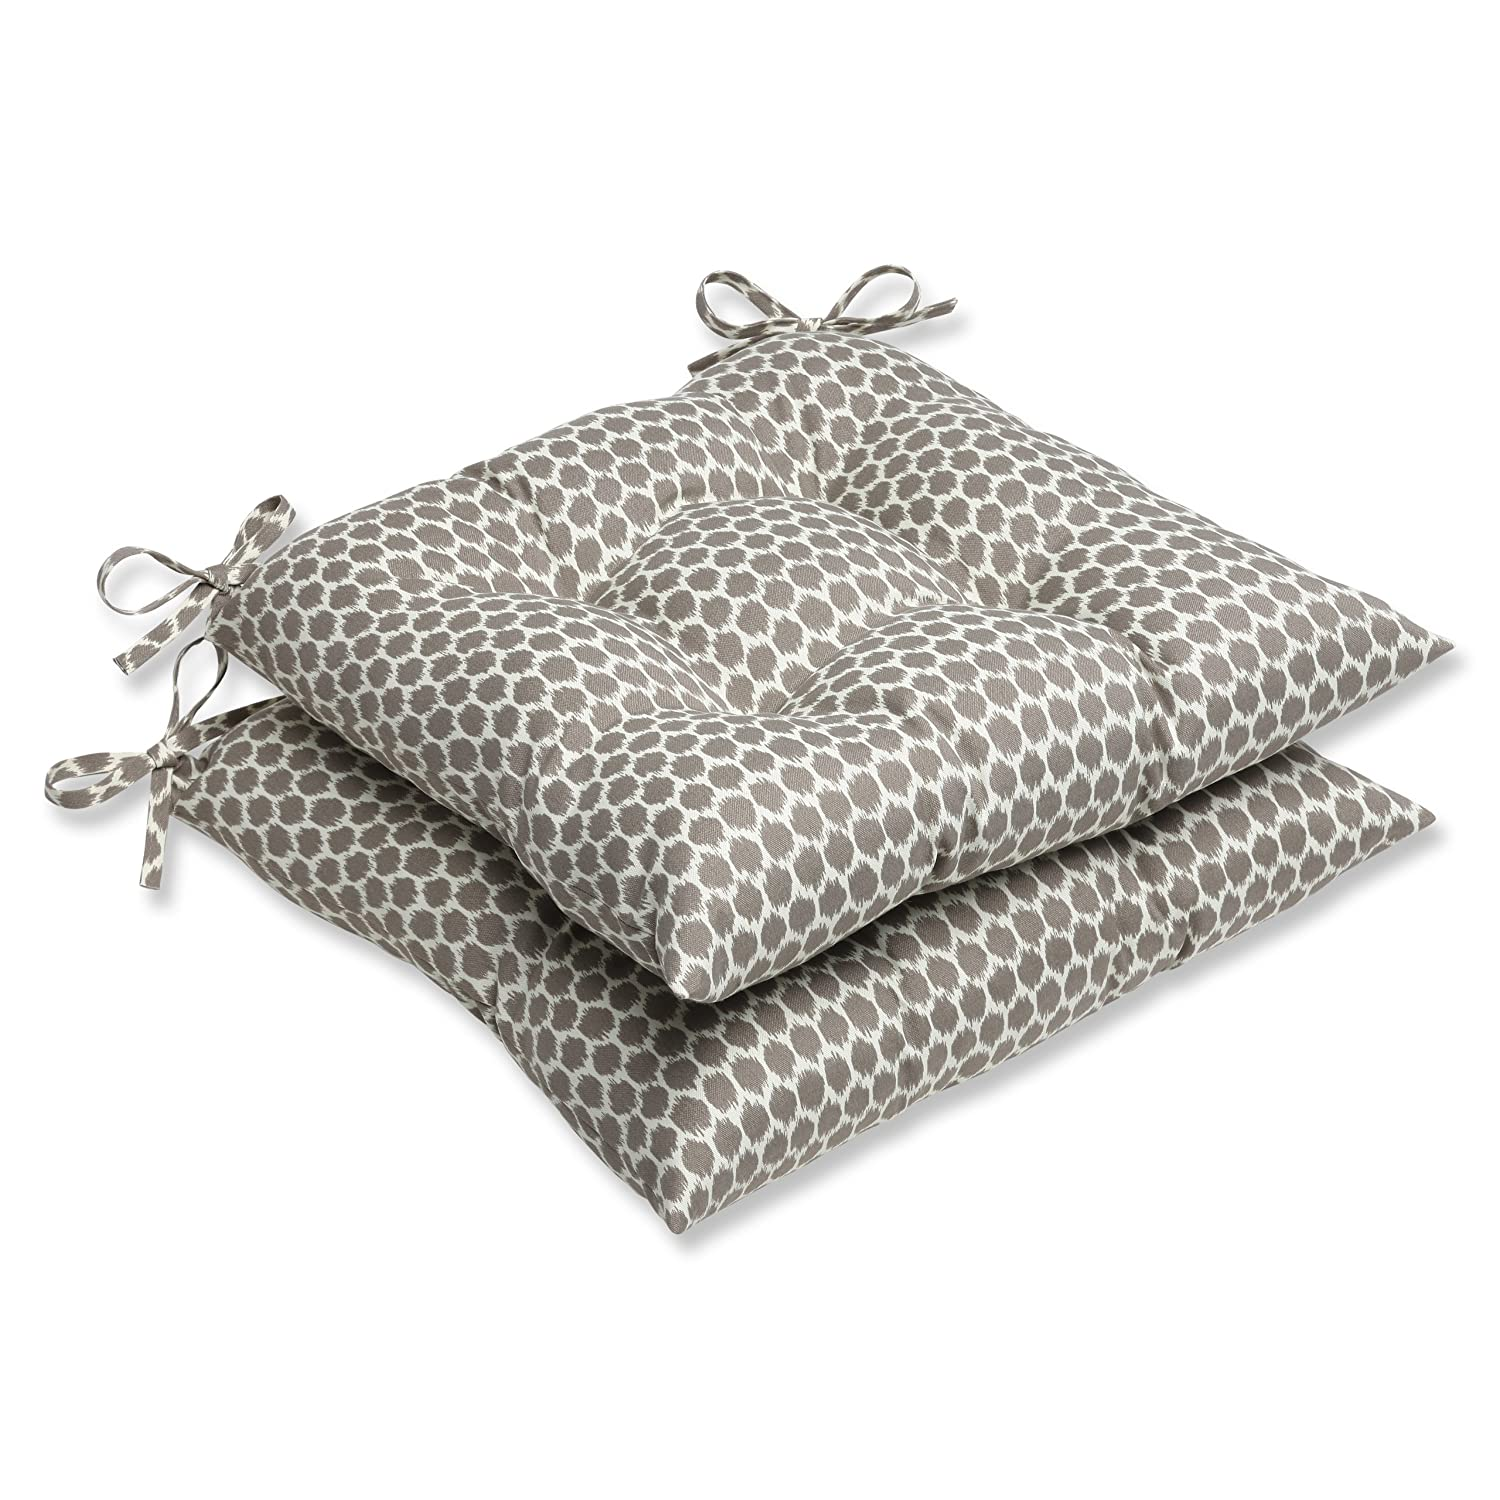 Pillow Perfect Outdoor Seeing Spots Sterling Wrought Iron Seat Cushion, Set of 2